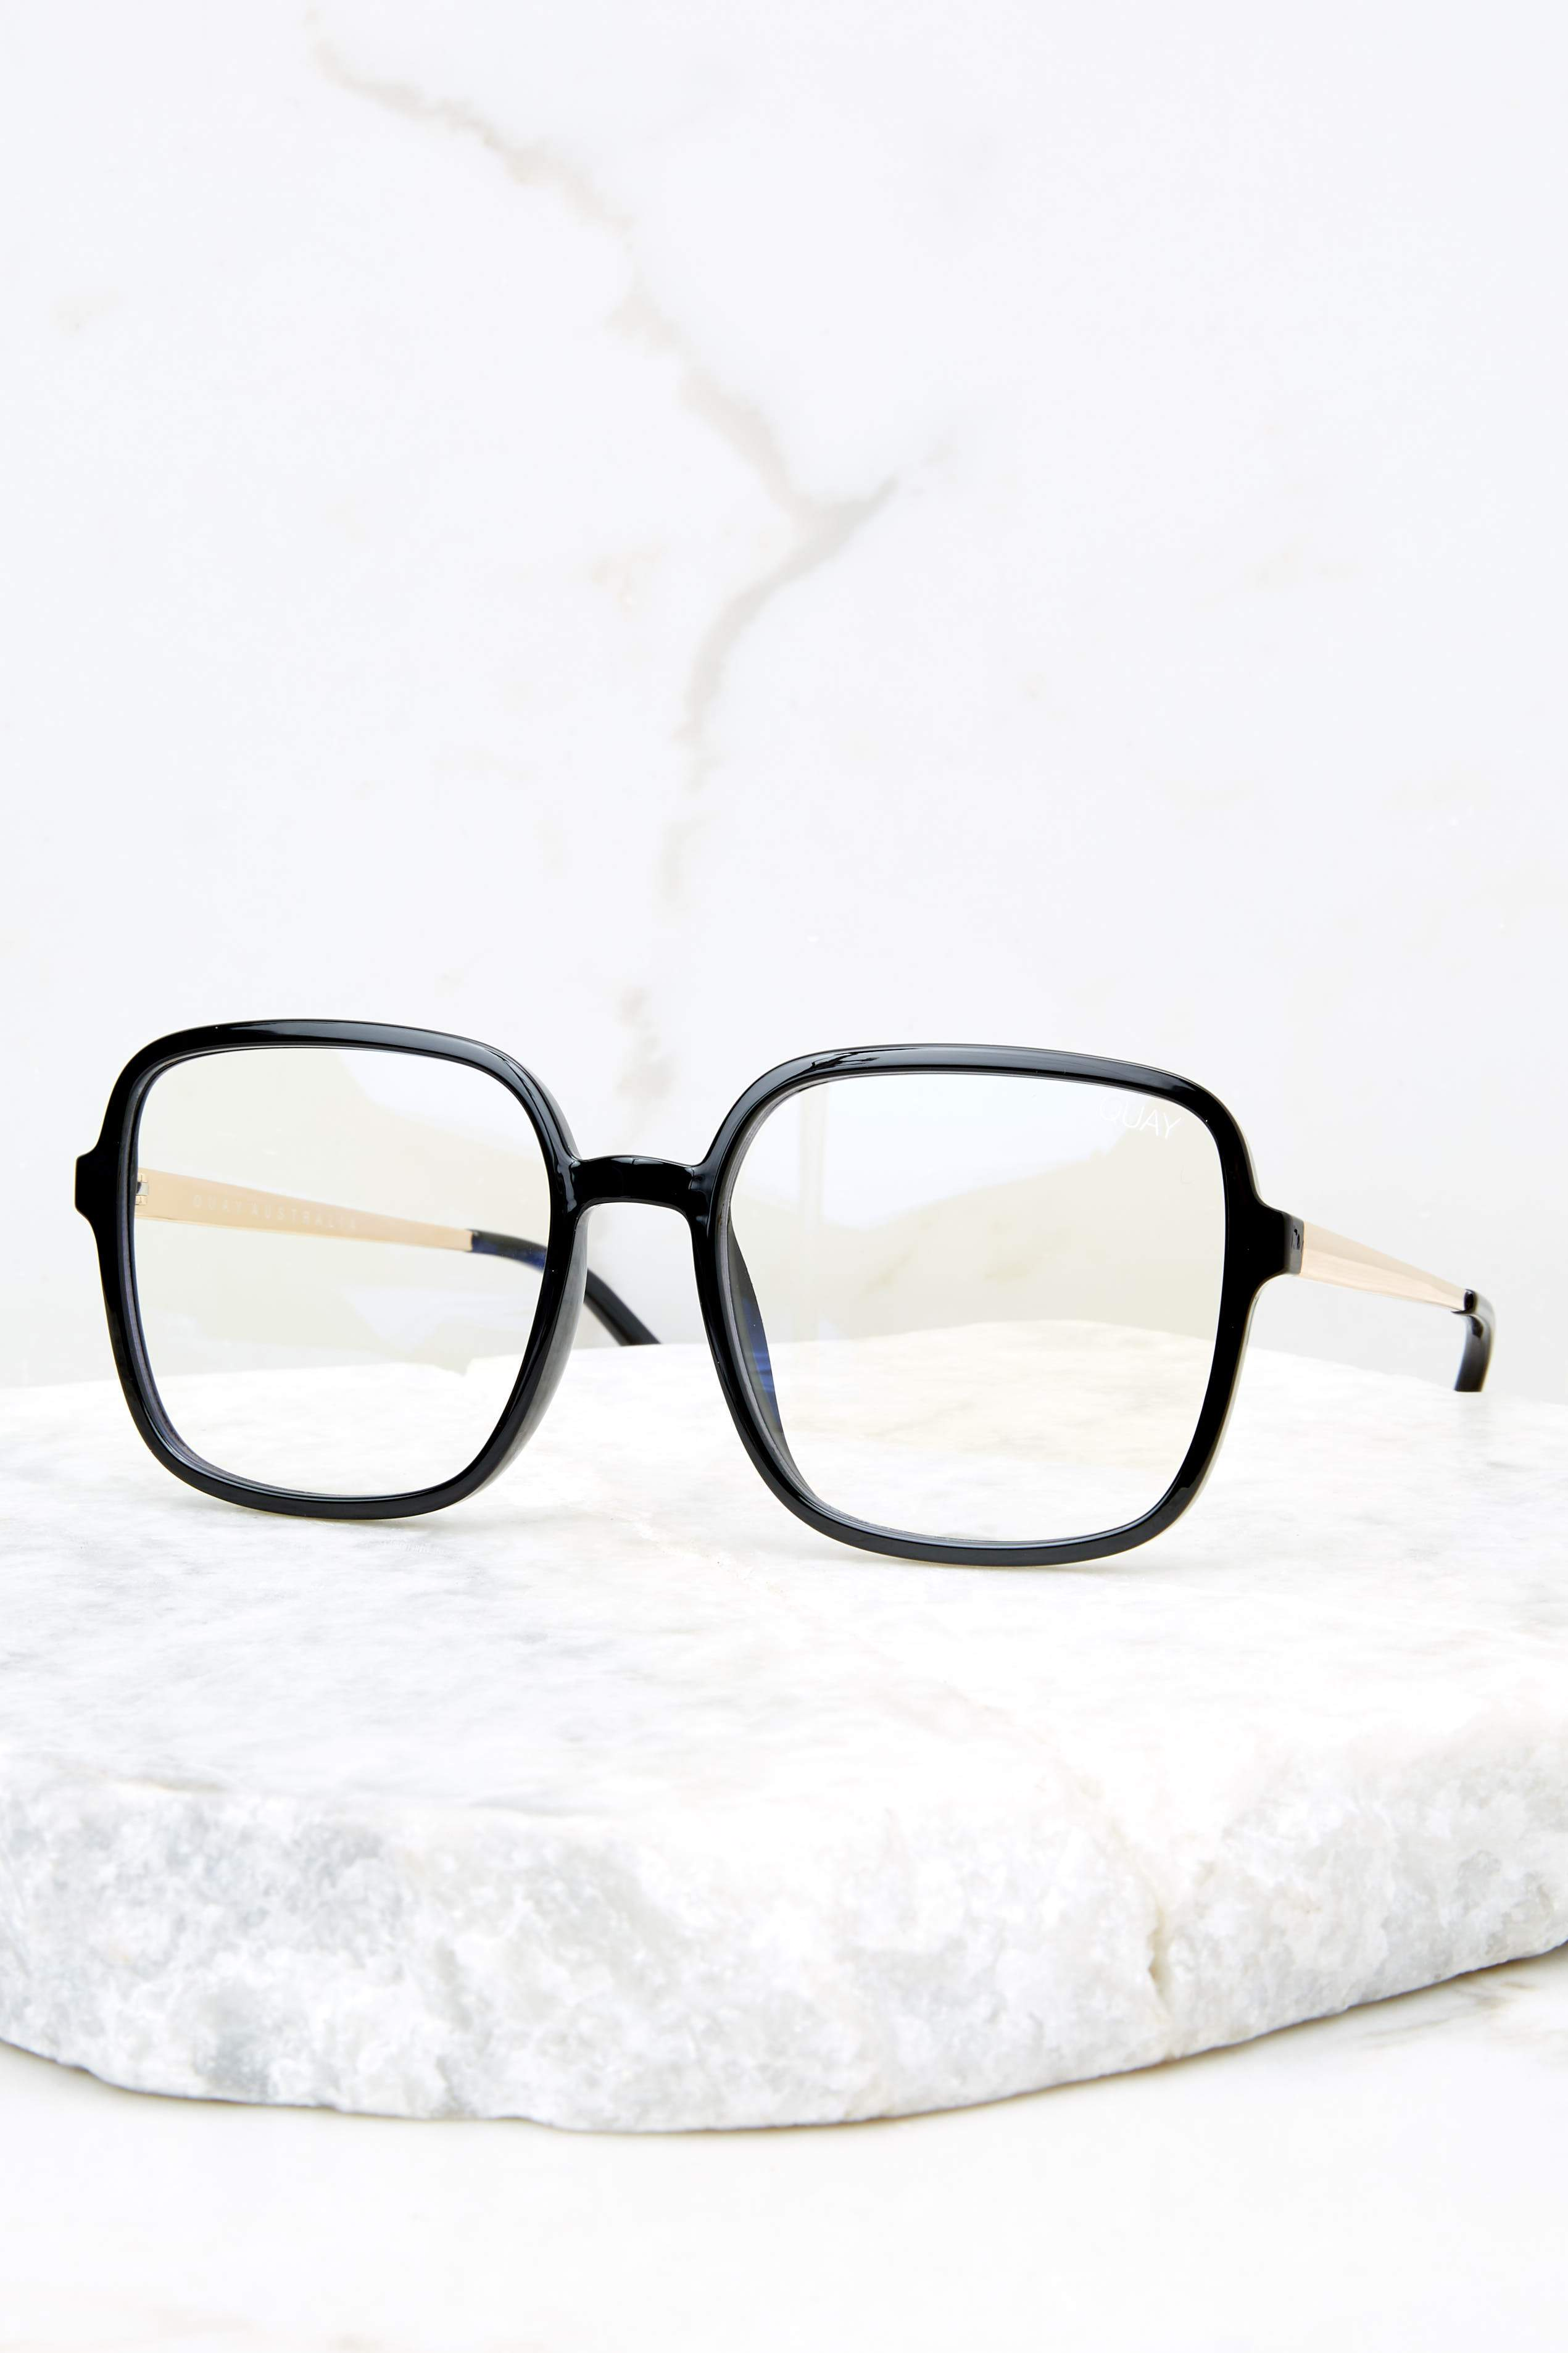 4 9 To 5 Black Clear Blue Light Glasses at reddressboutique.com